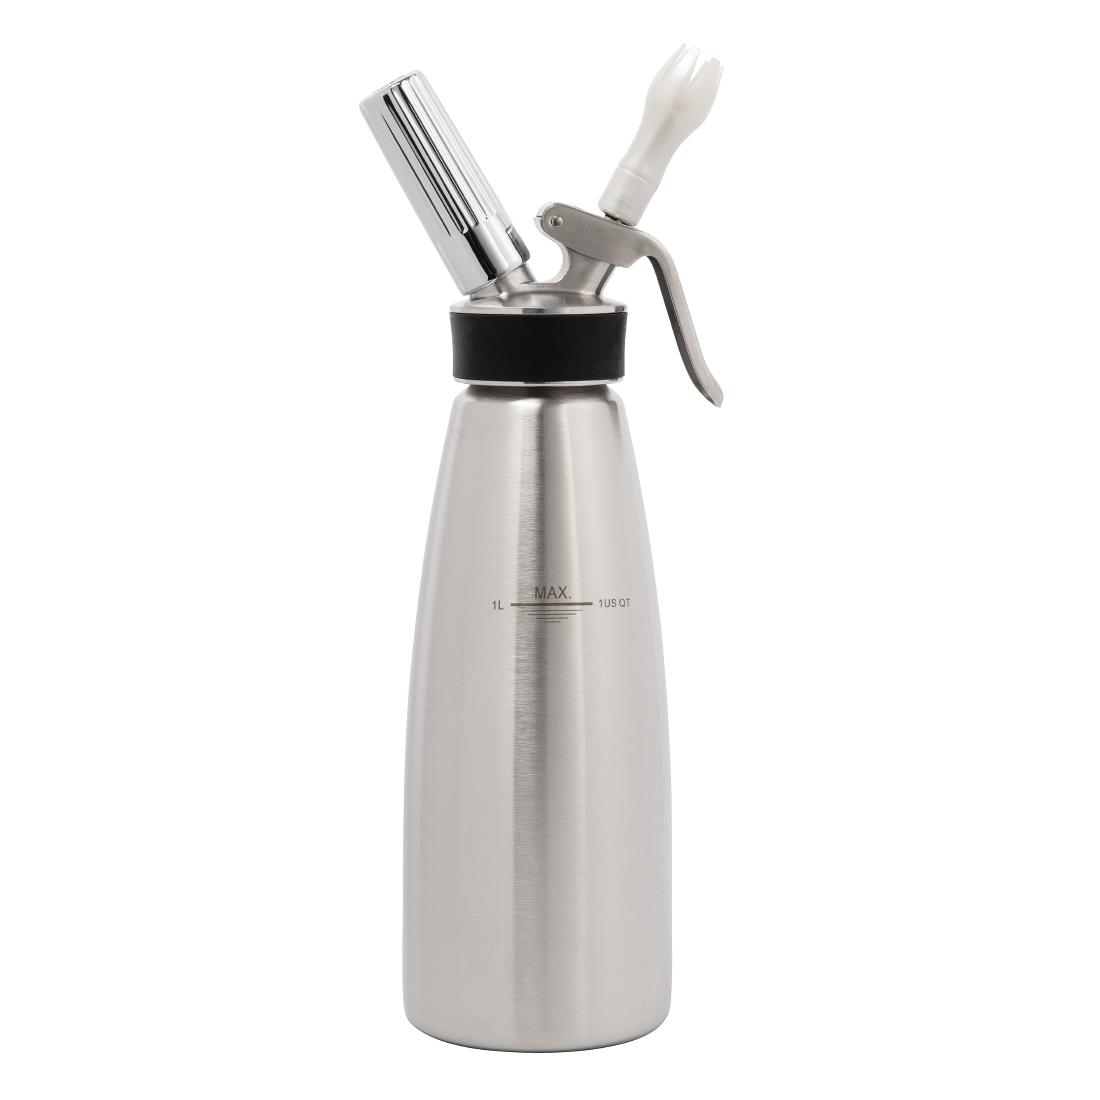 Image of ISI Whipped Cream Dispenser 1Ltr